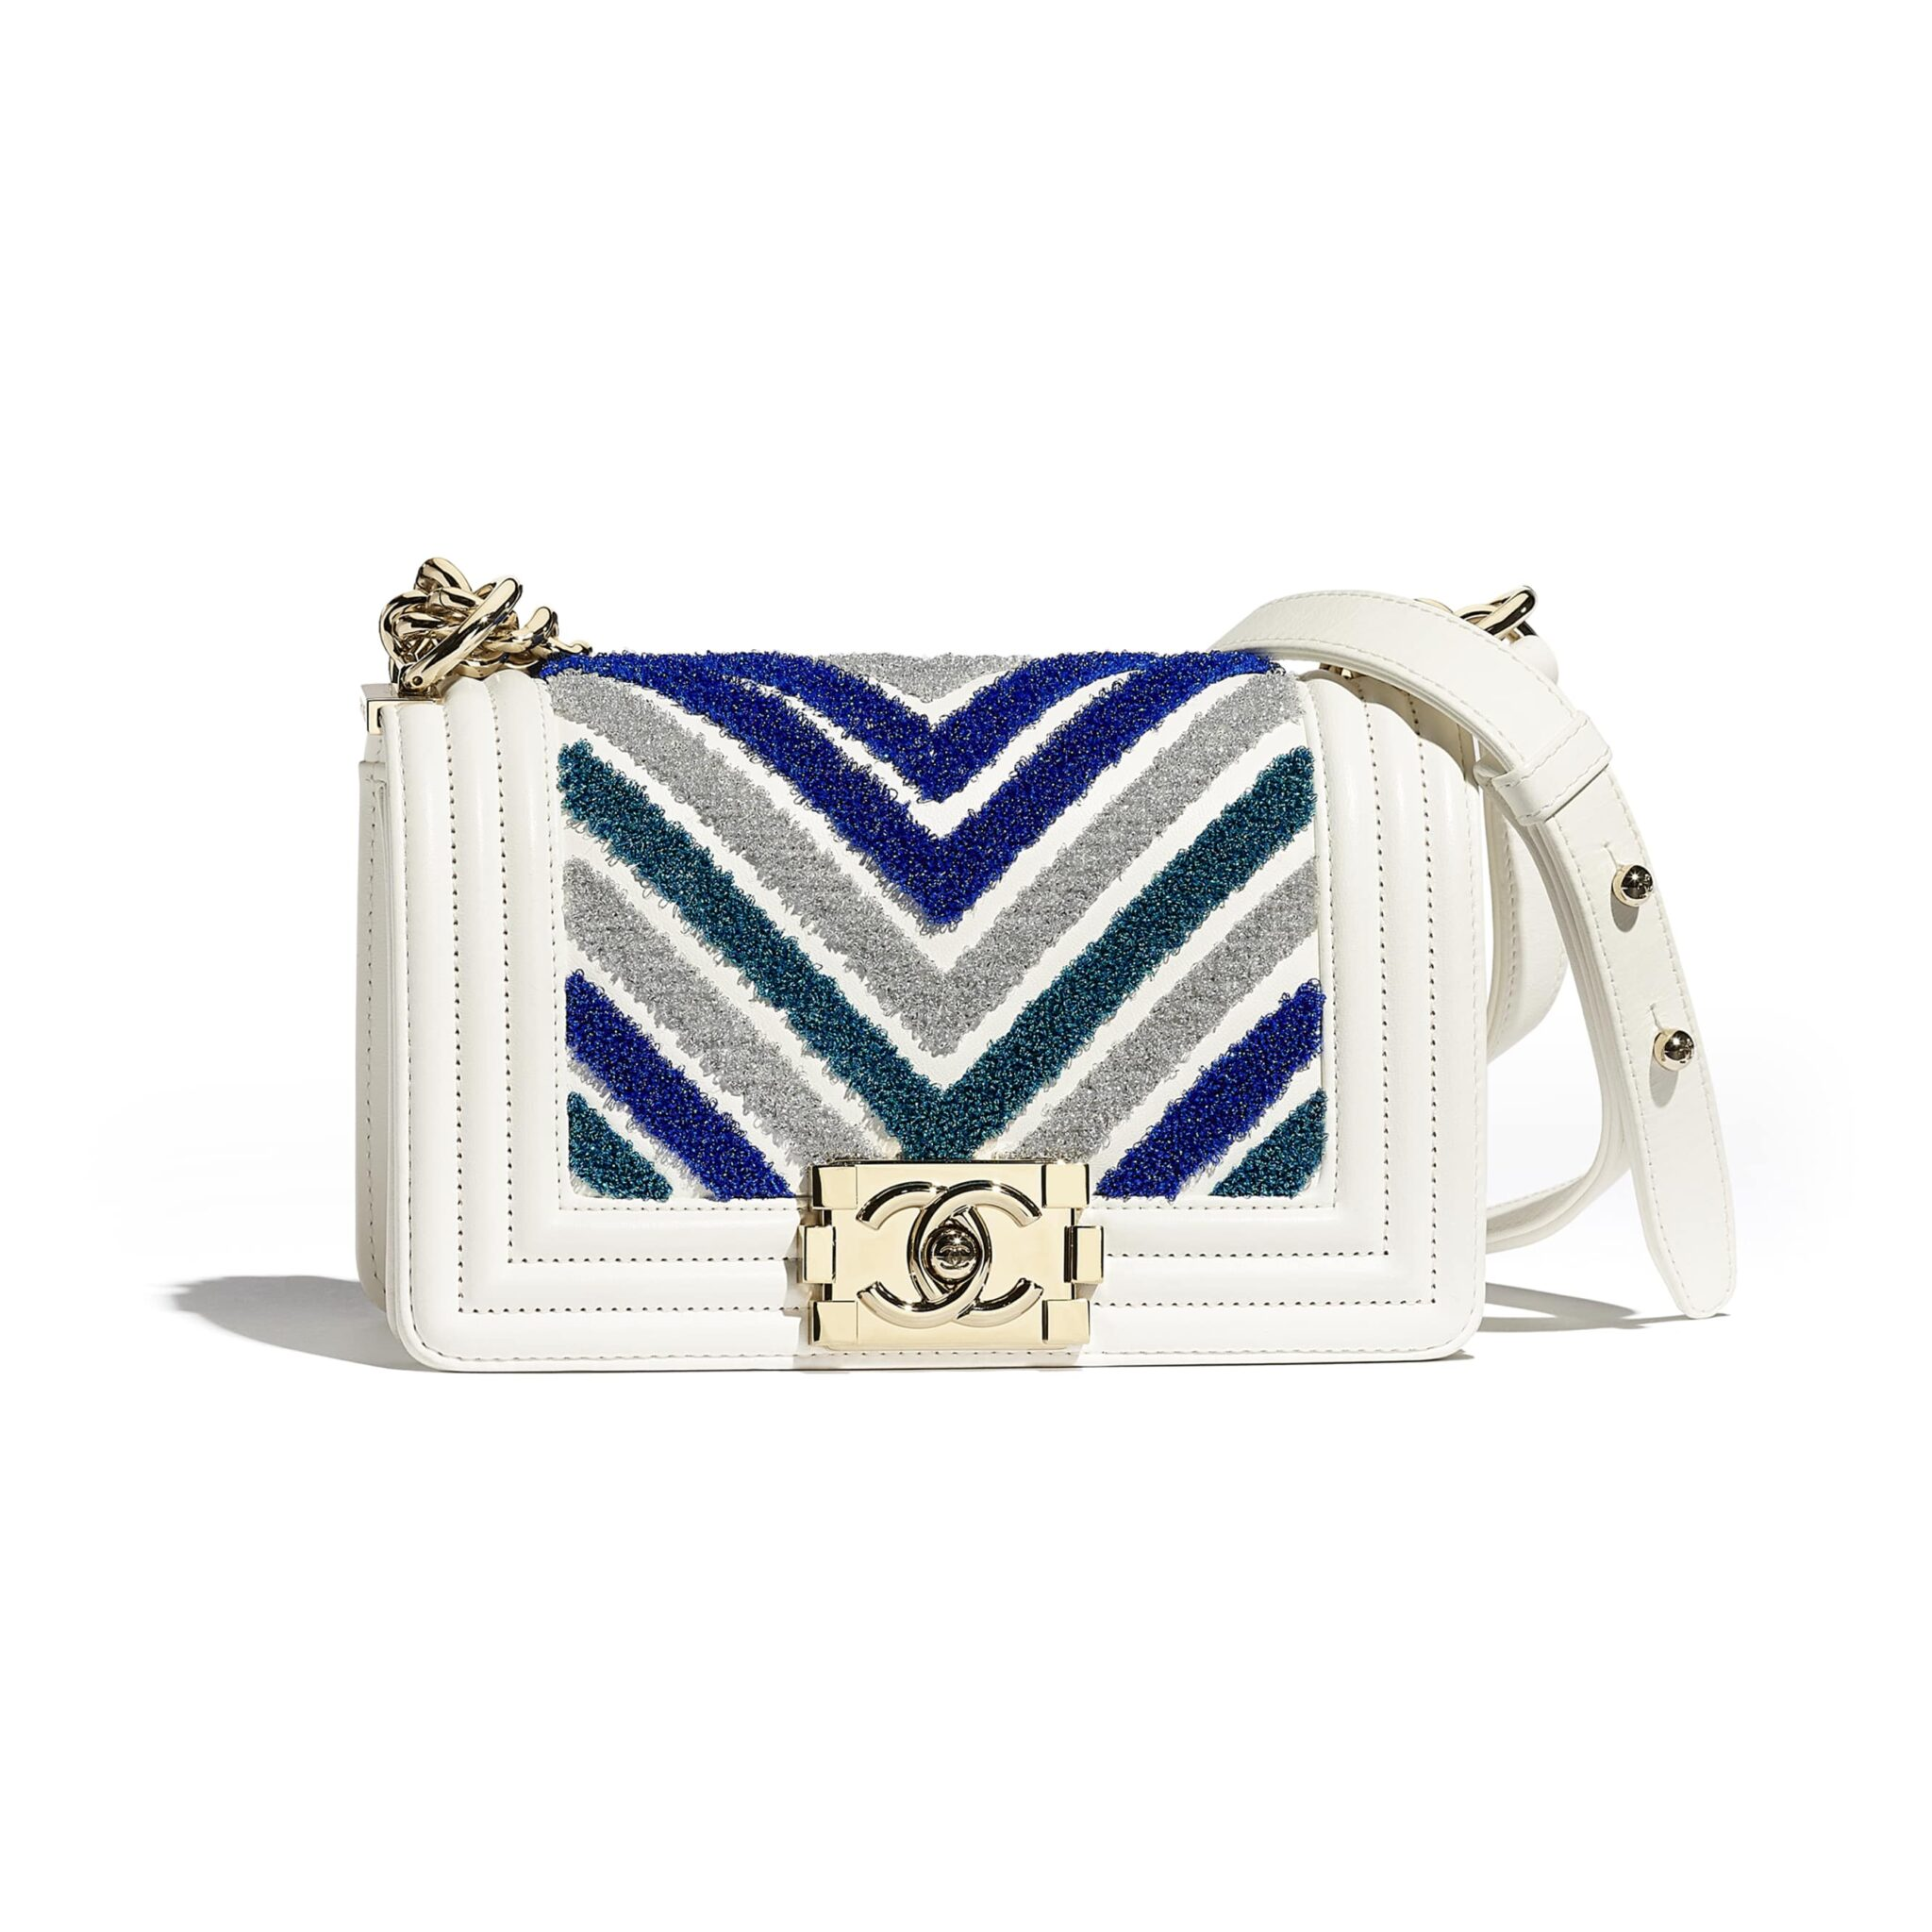 c788f5c6e5589b Chanel Blue/White Embroidered Calfskin/Lurex Boy Chanel Small Flap Bag